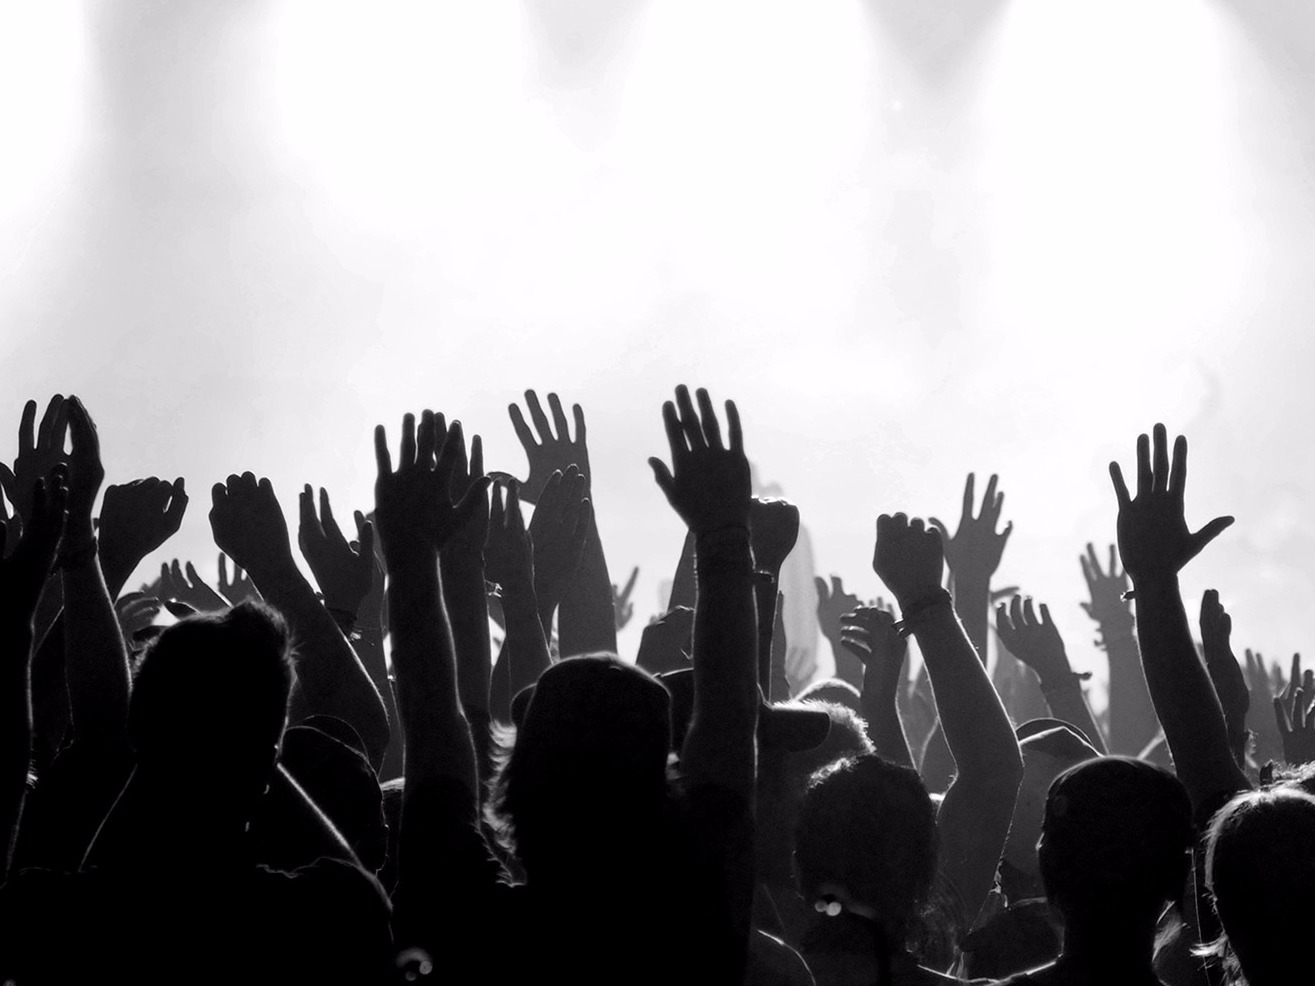 5 Important Things To Bring To Every Concert